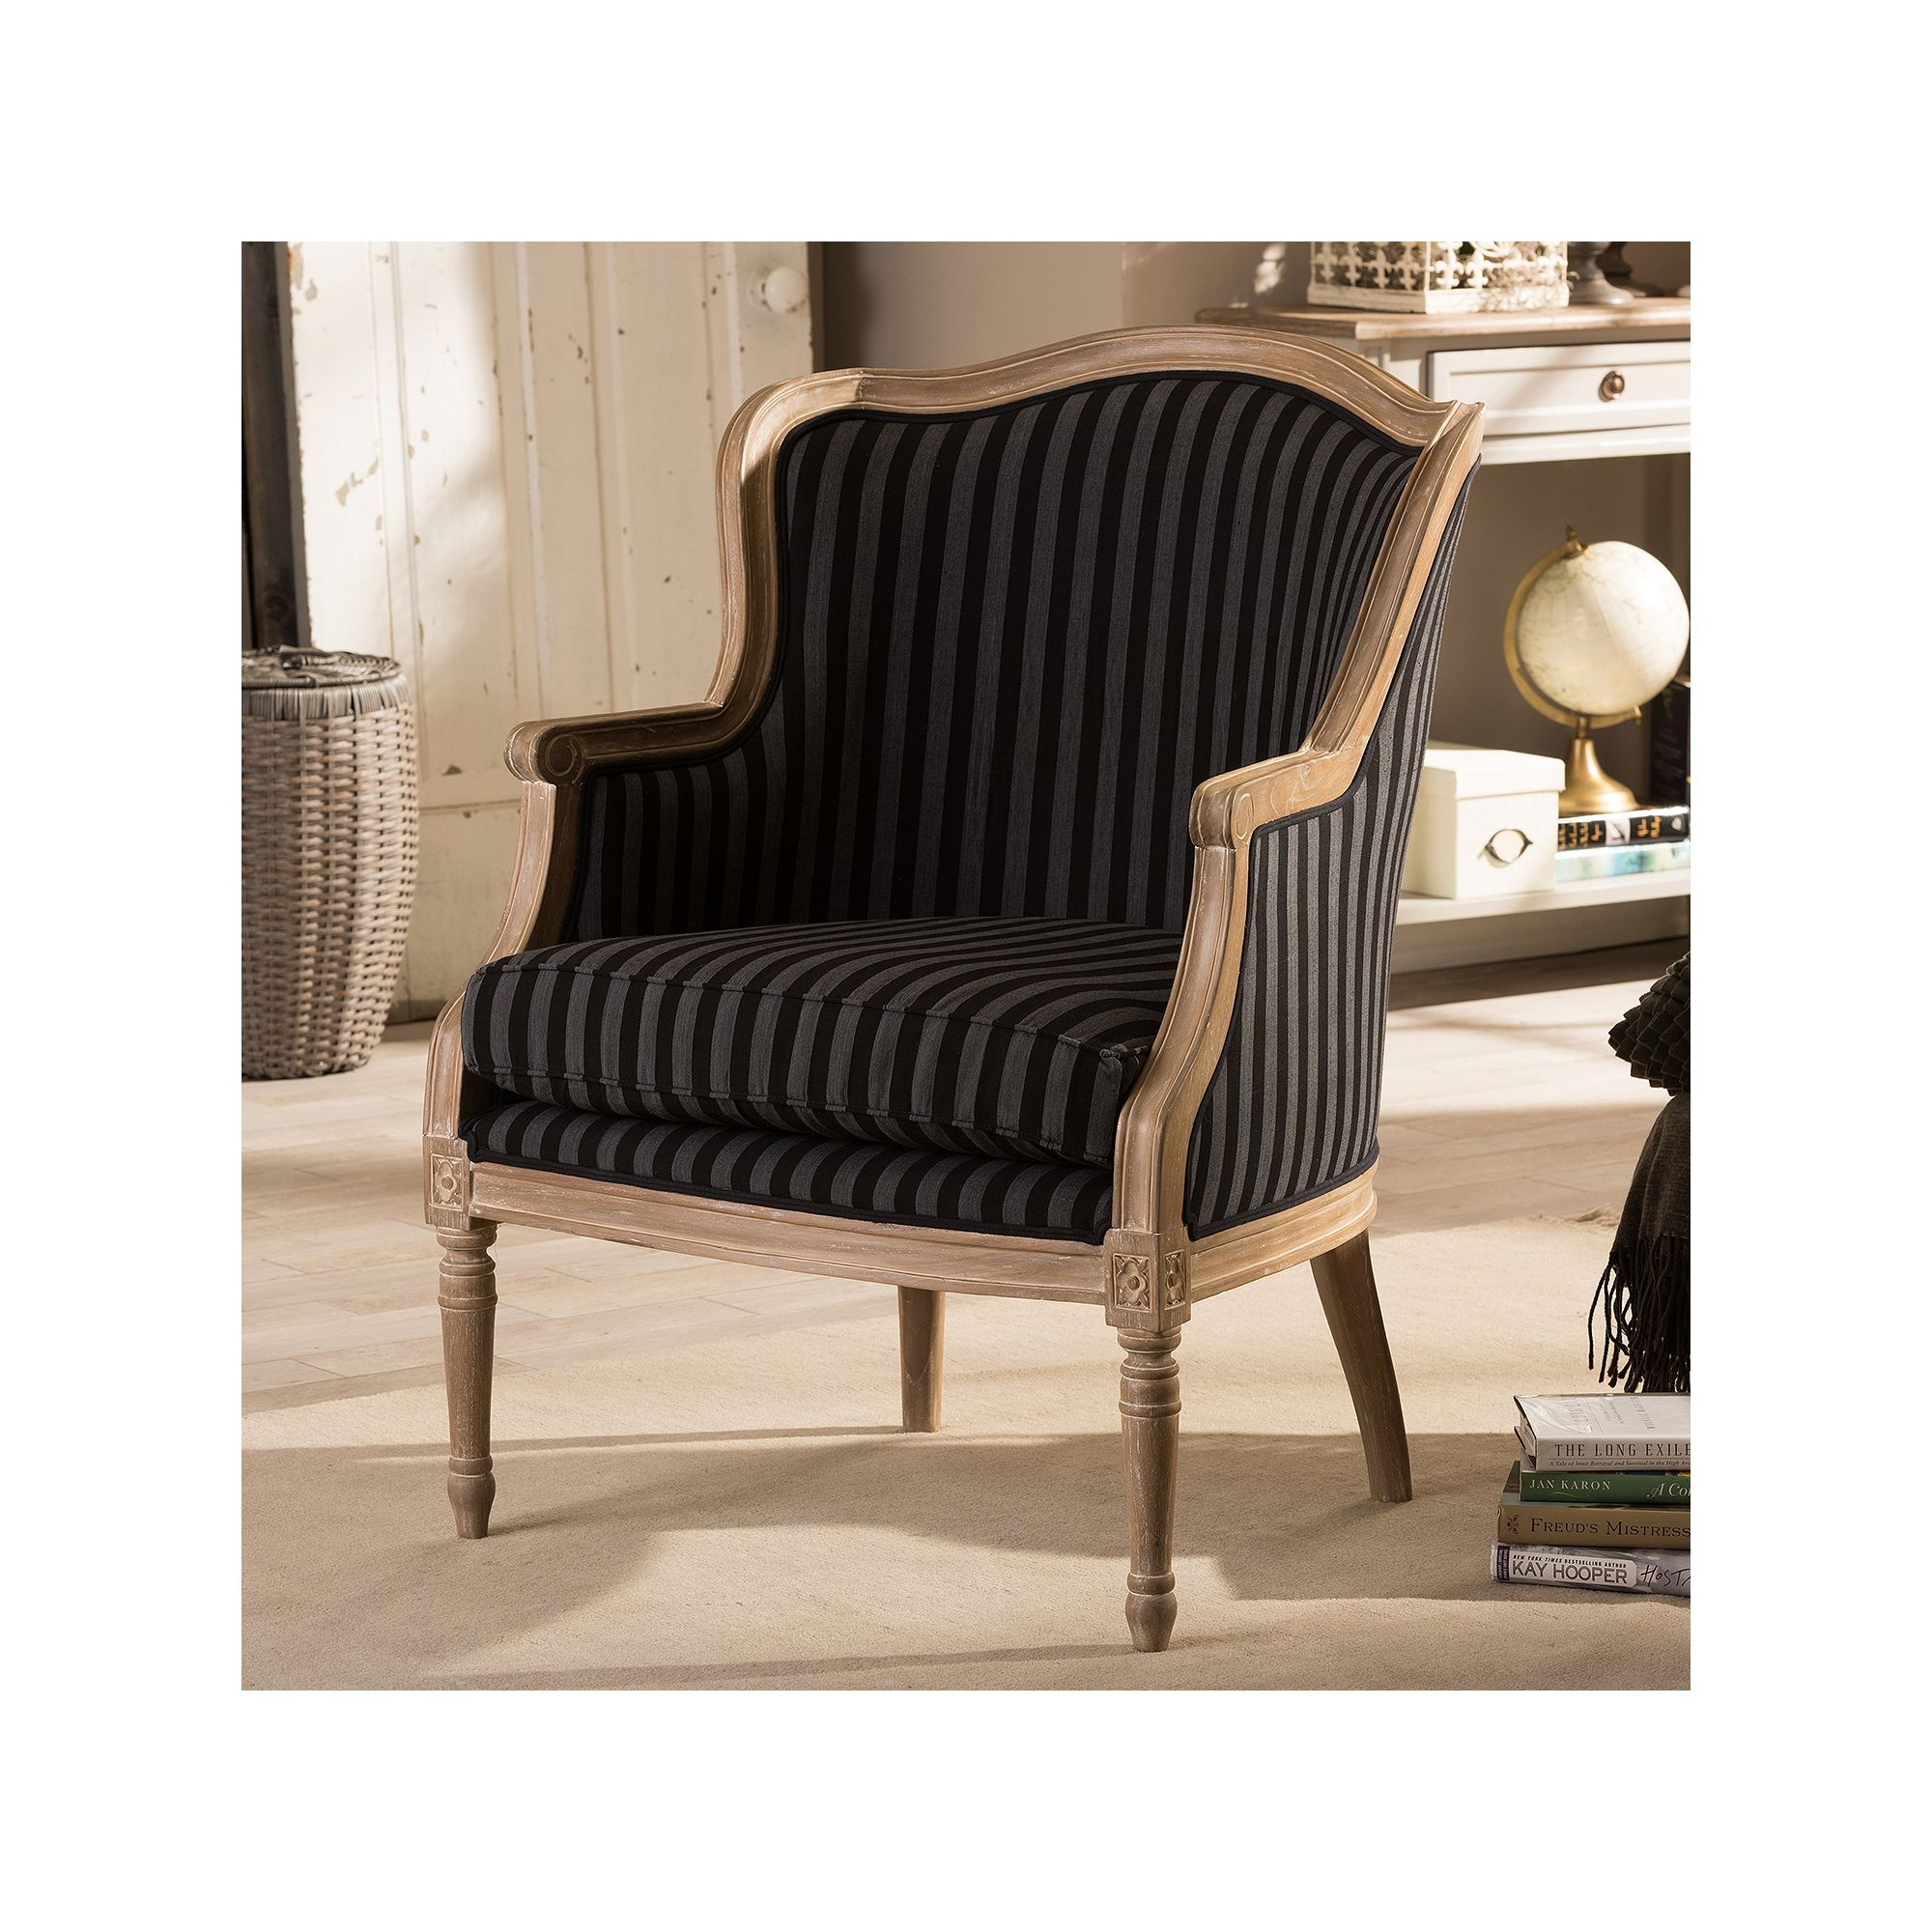 Fabulous Baxton Studio Charlemagne French Accent Chair Products Pabps2019 Chair Design Images Pabps2019Com